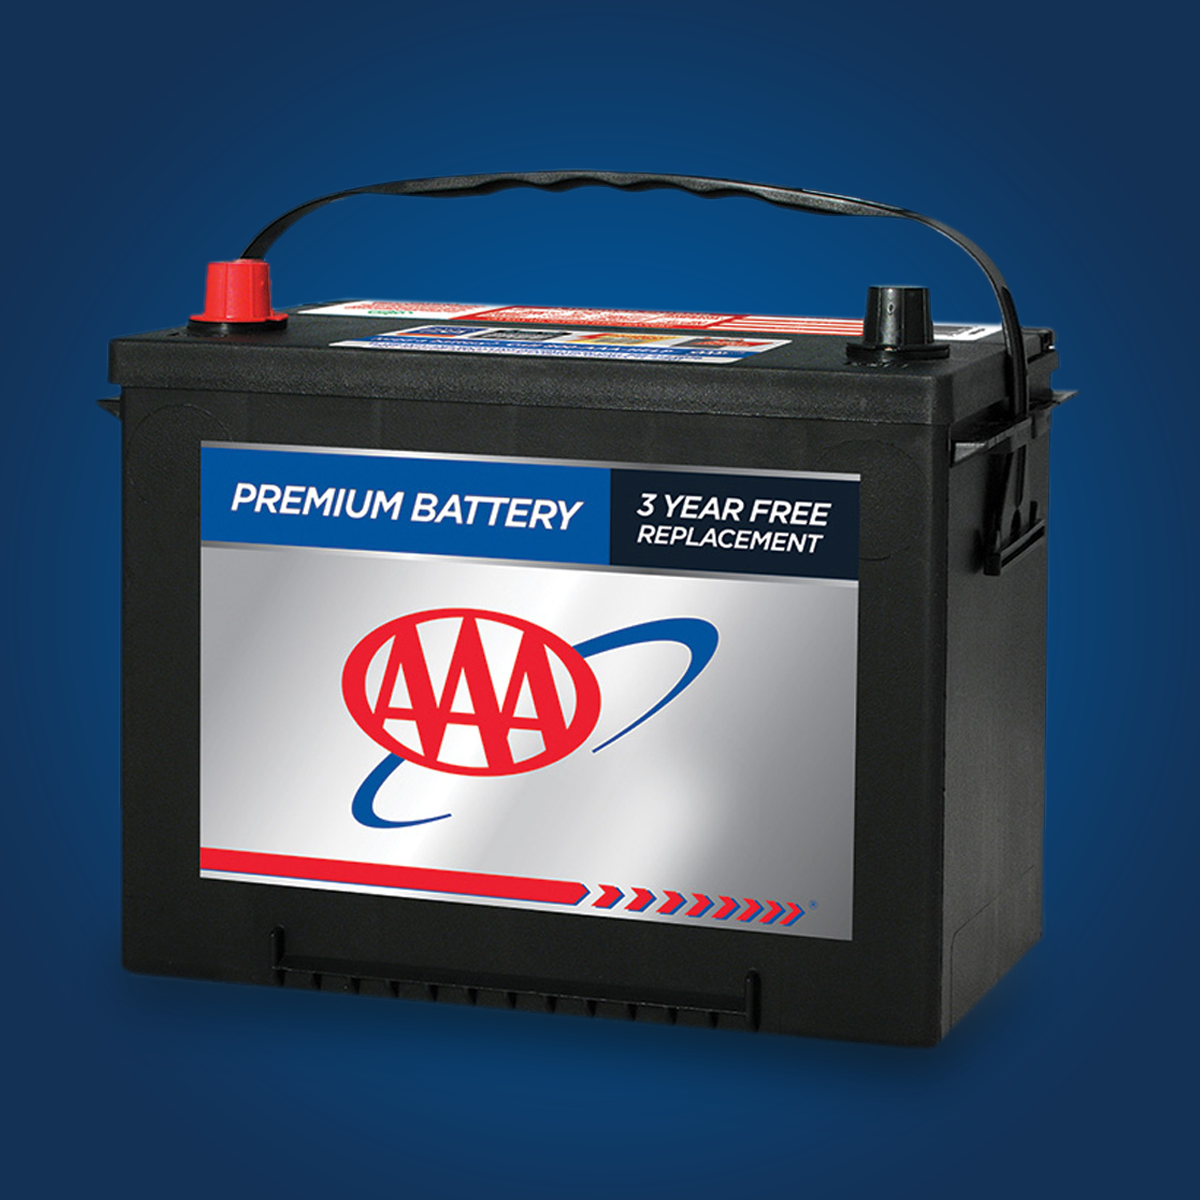 Aaa Tests Delivers And Installs Batteries True Or False Car Battery Mobile Battery Battery Testing